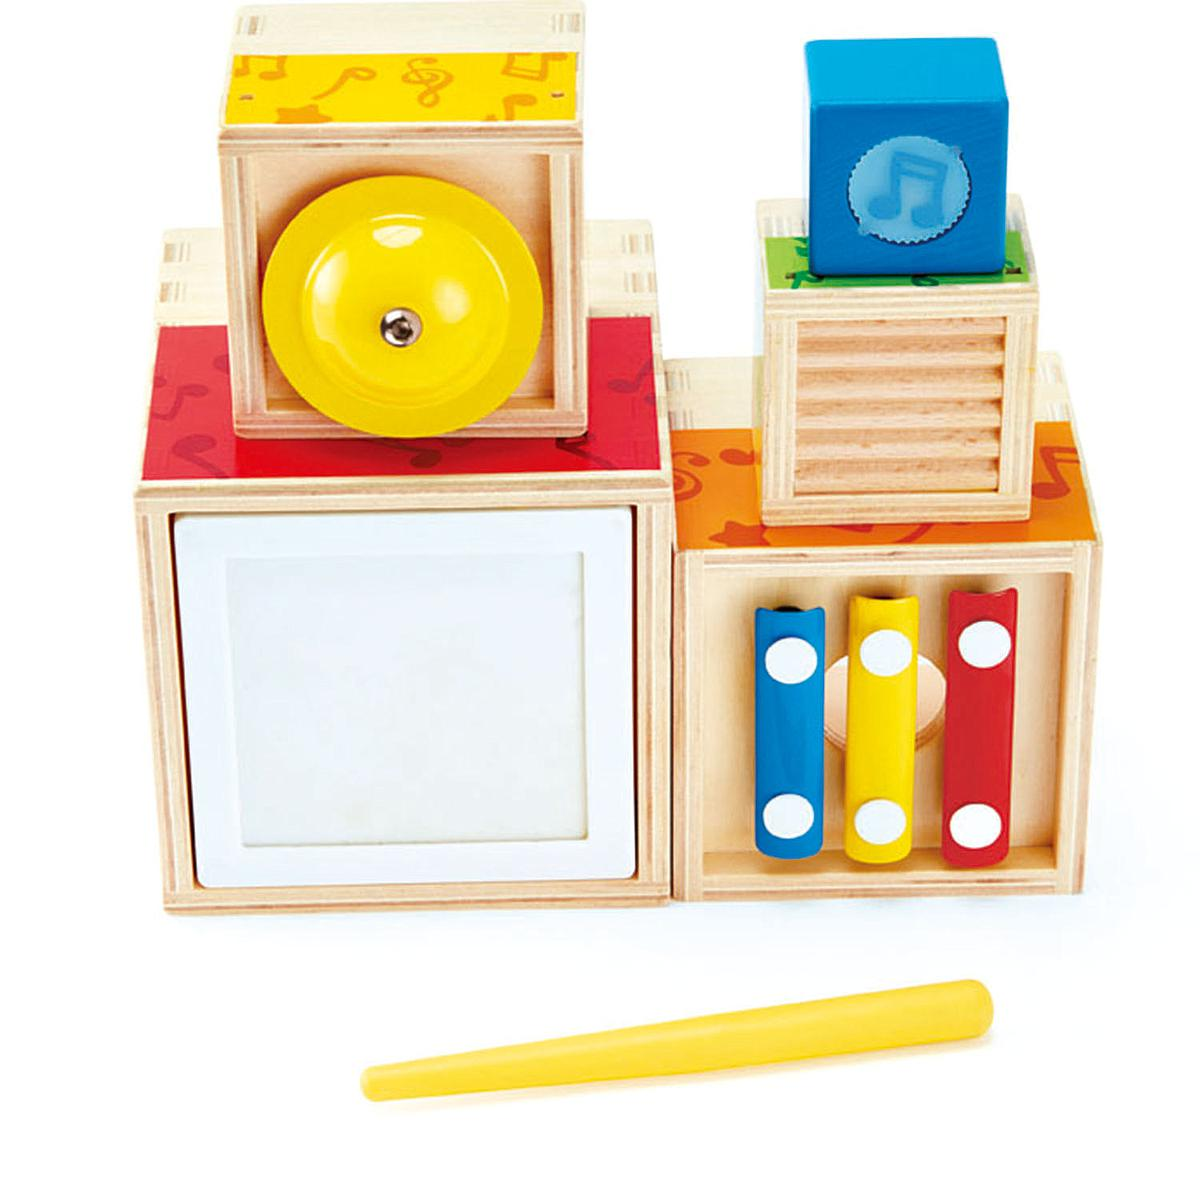 Instrument musique STACKING MUSIC Hape